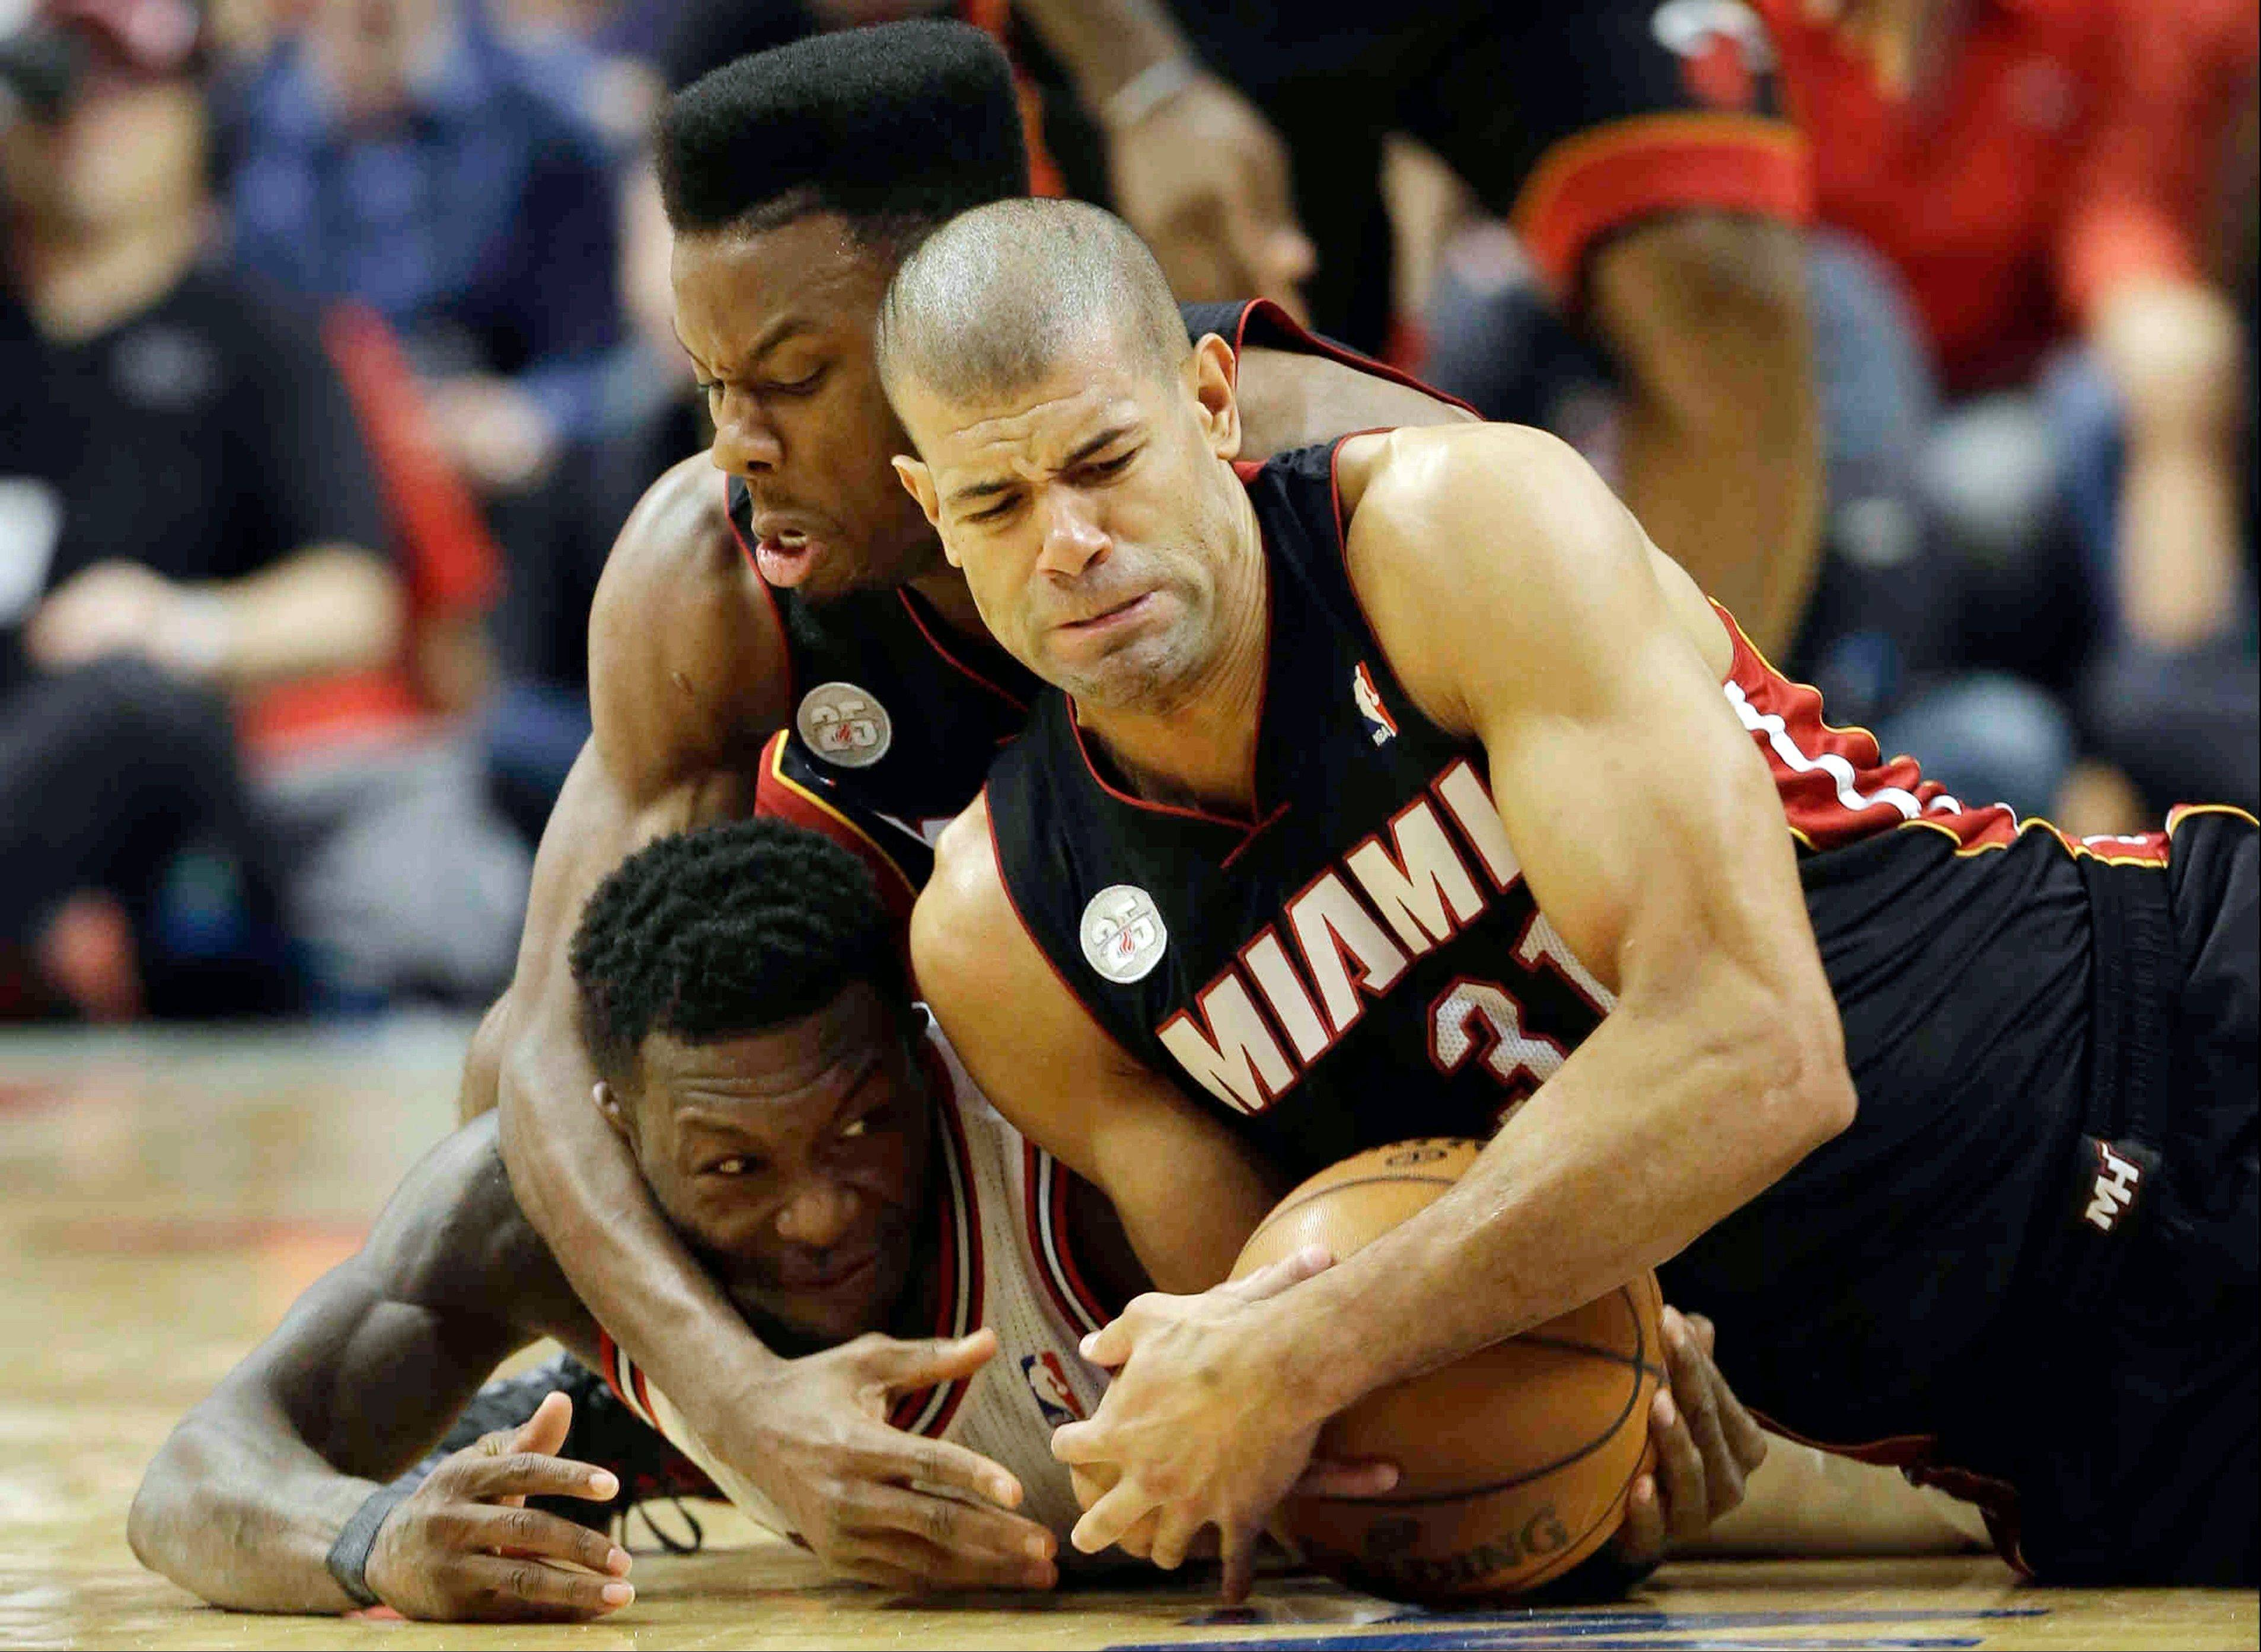 The Bulls' Nate Robinson,left, battles for a loose ball against the Heat's Norris Cole, center, and Shane Battier on Monday at the United Center.